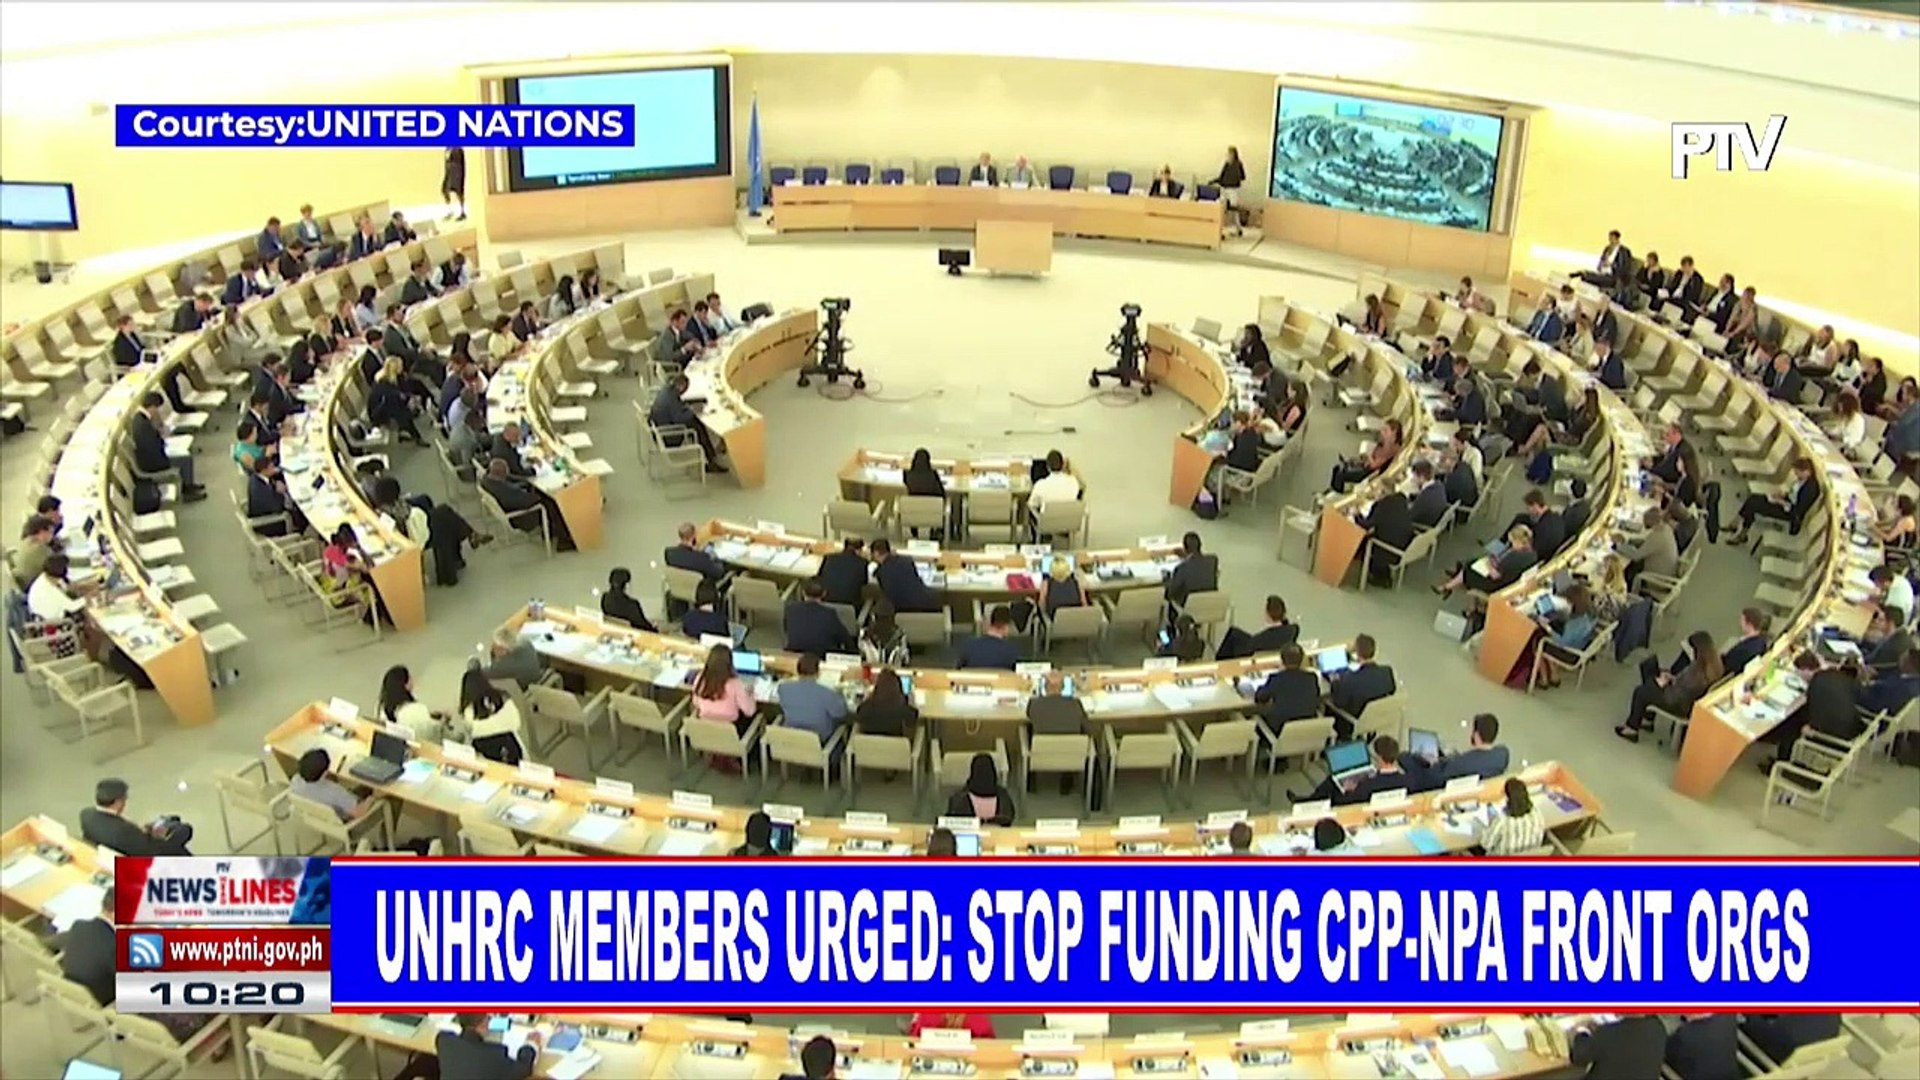 UNHRC members urged: Stop funding CPP-NPA front orgs